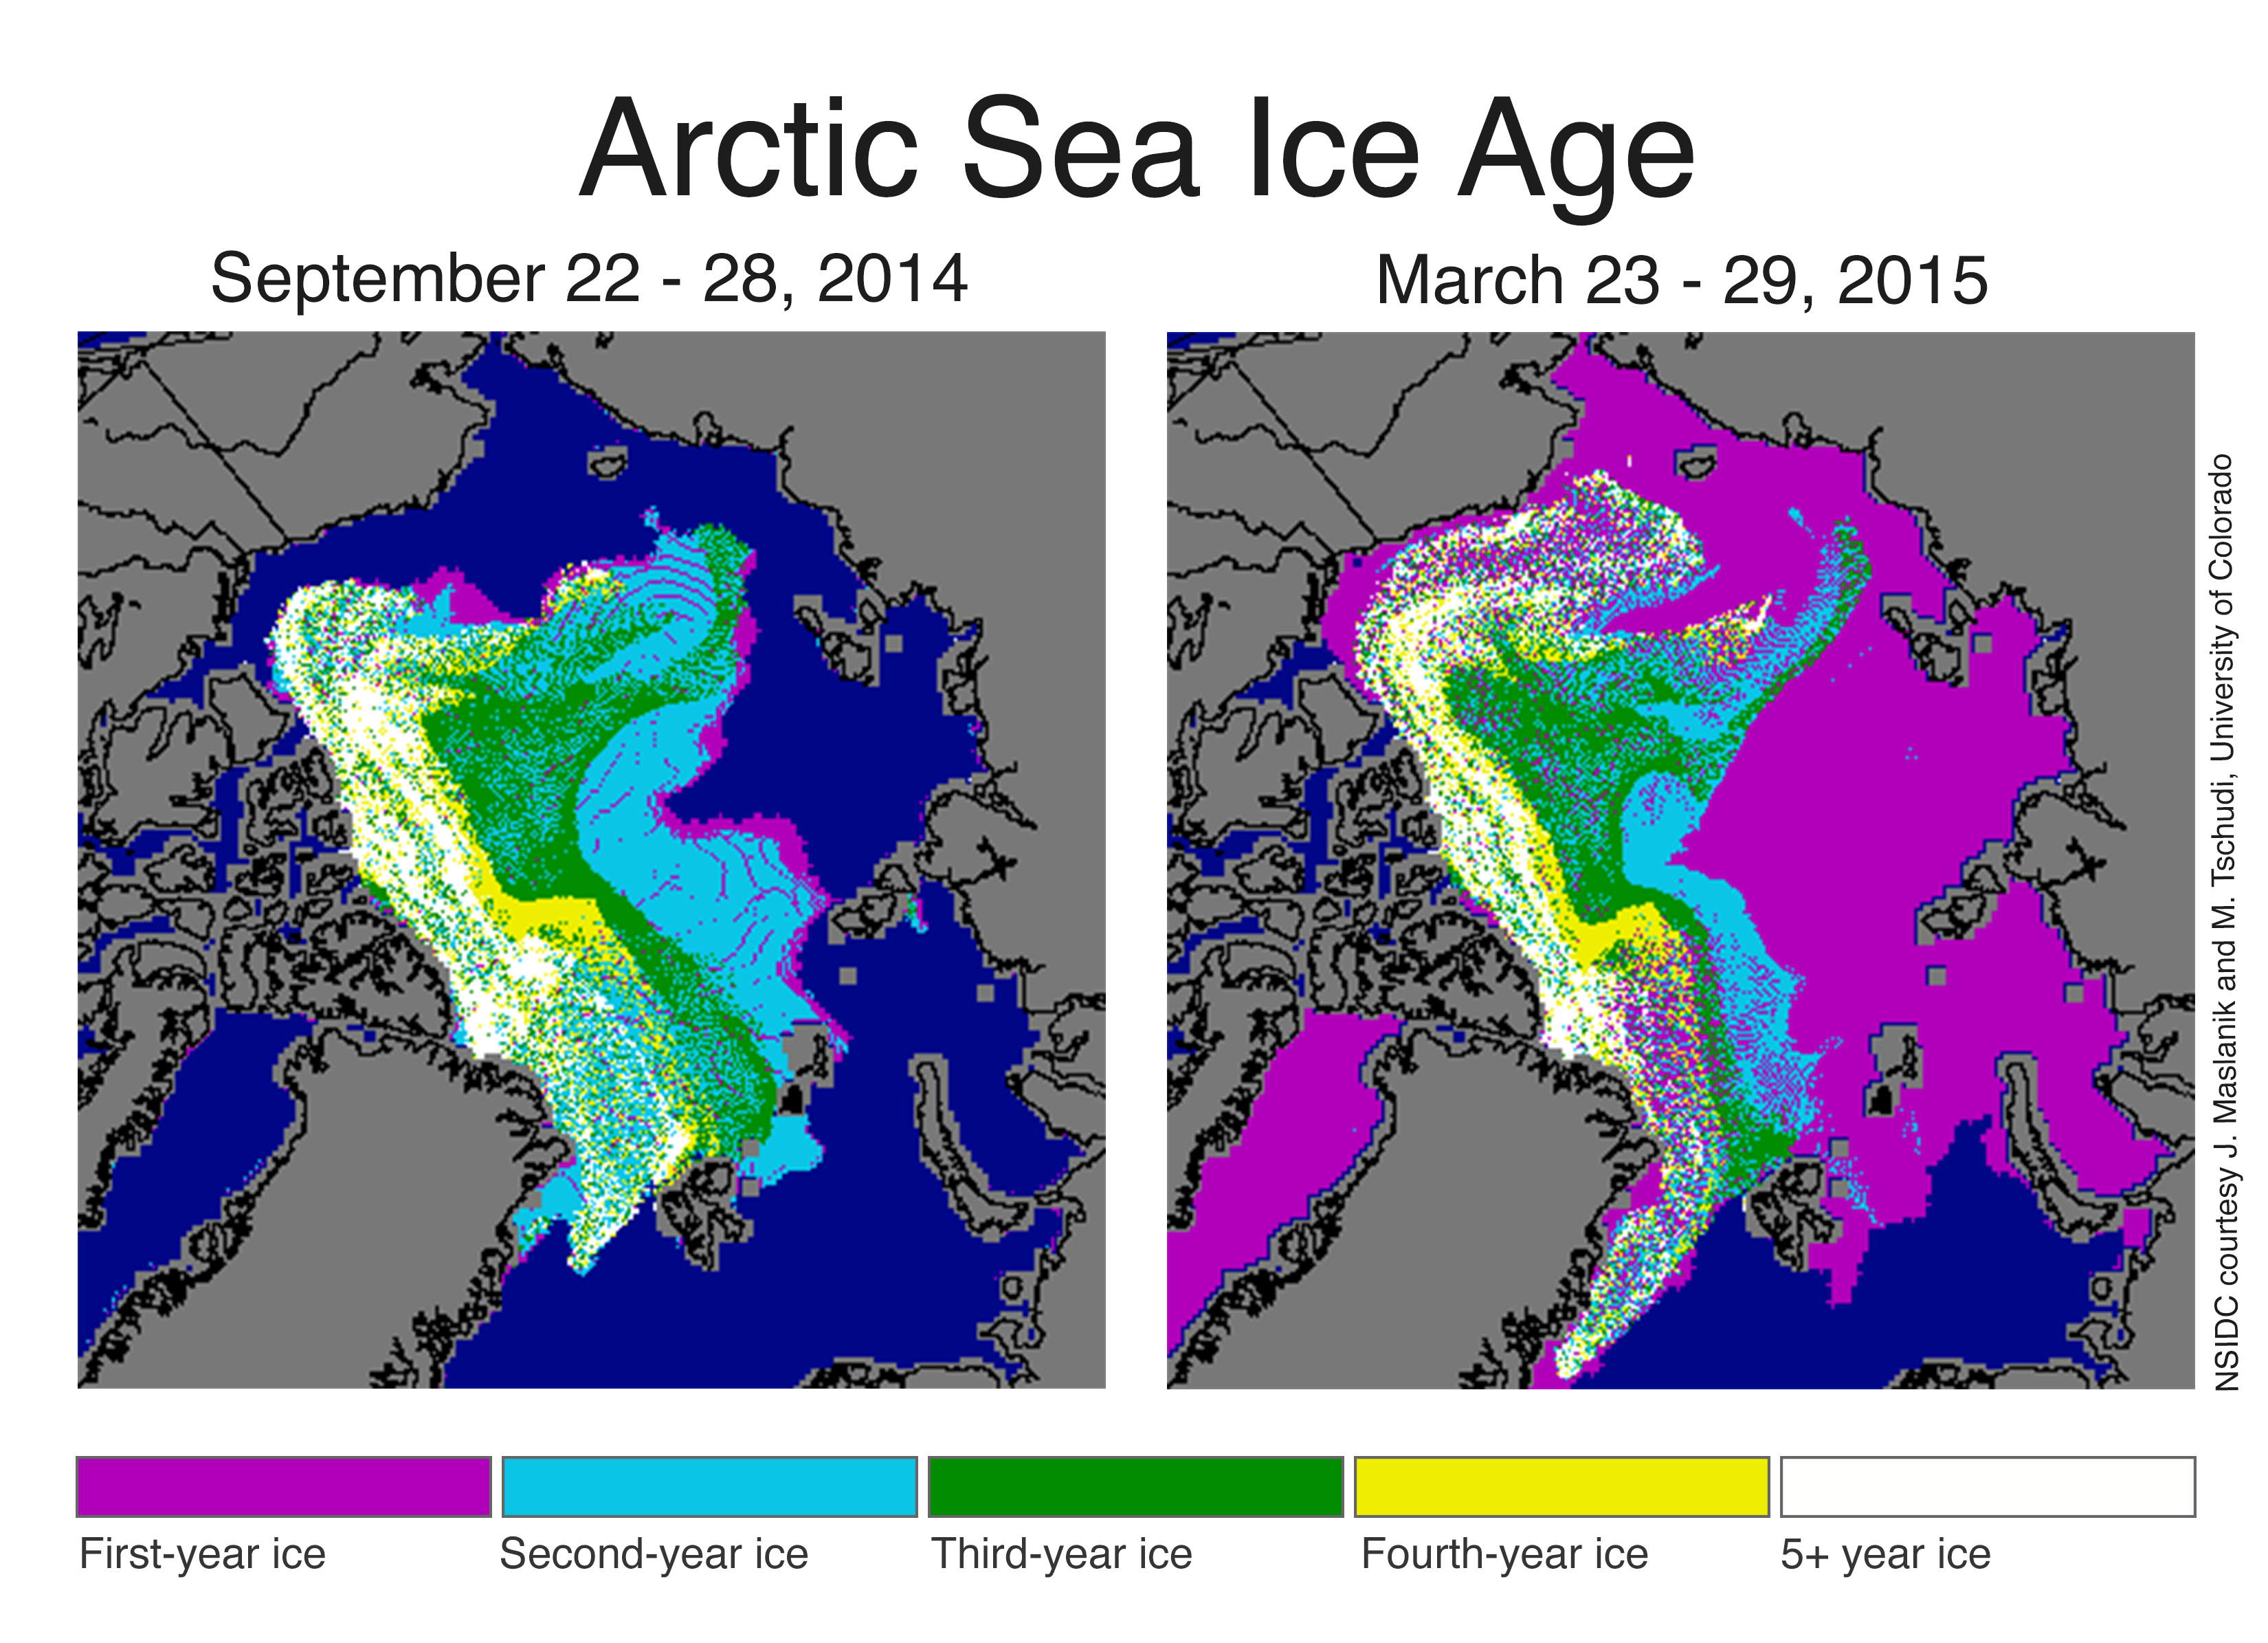 Ice Age Map Of The World.Third Dimension New Tools For Sea Ice Thickness Arctic Sea Ice